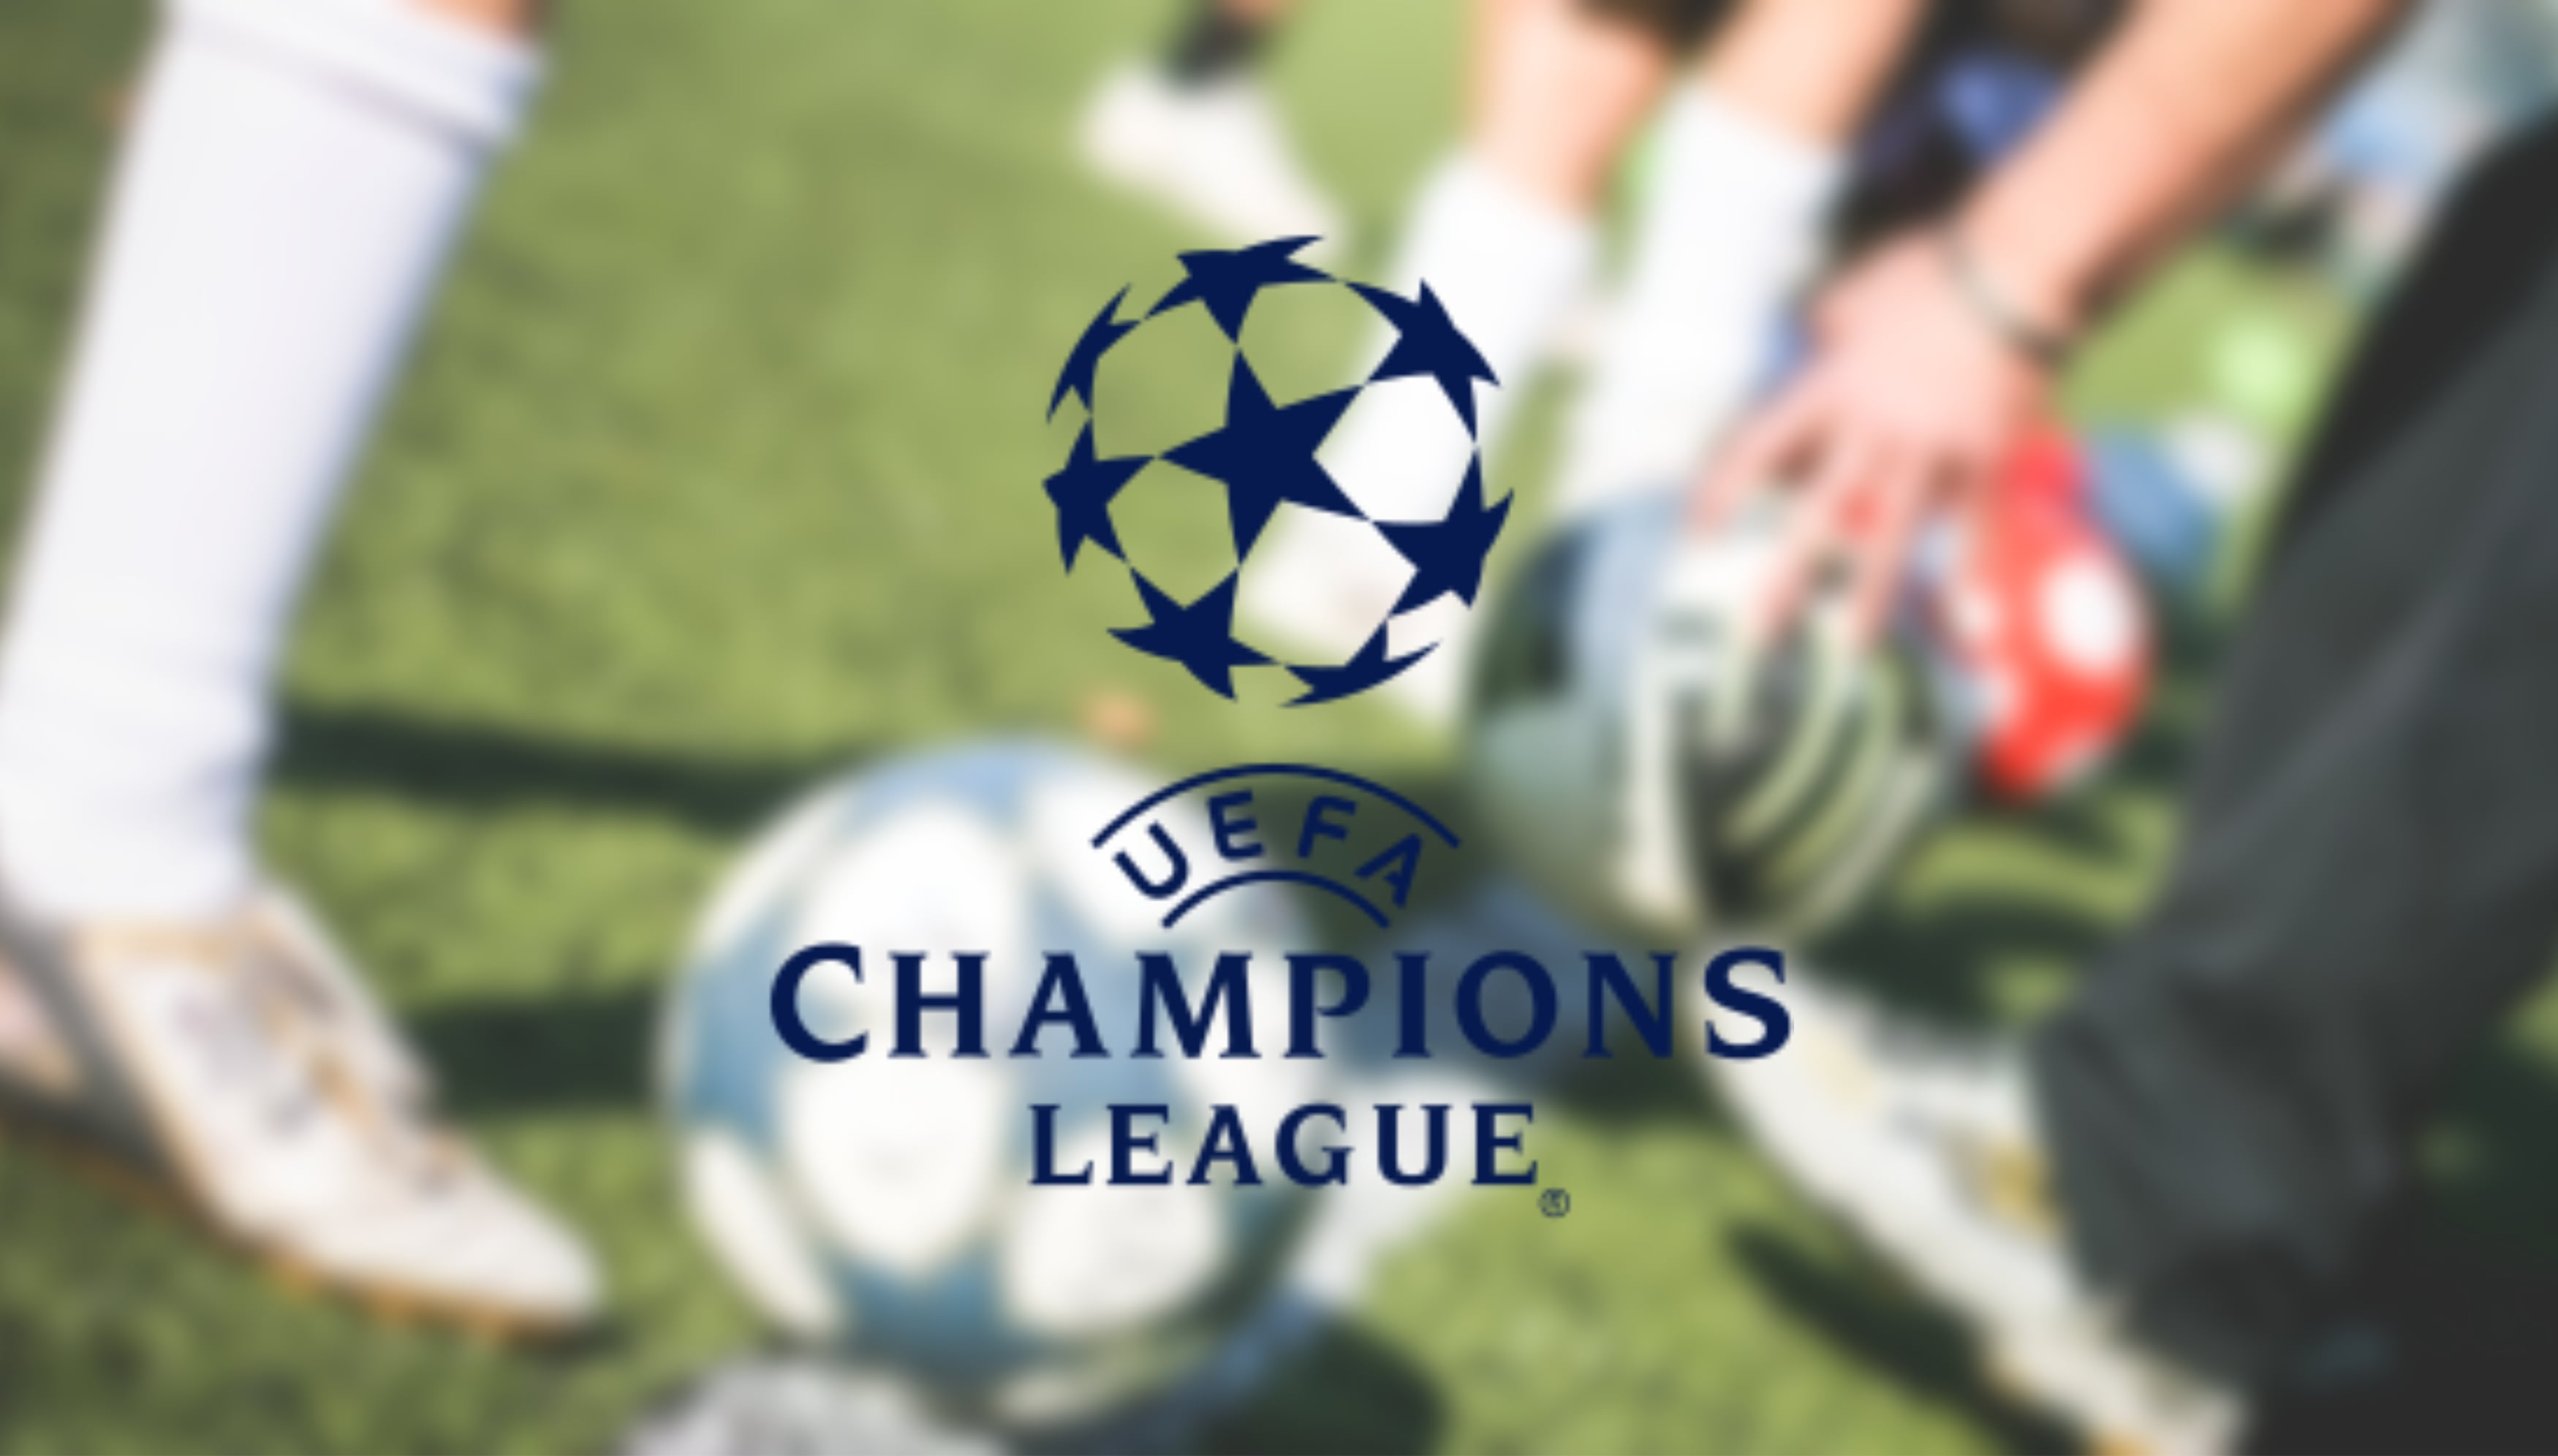 Champions League 19/20 Third Qualifying Round Leg One Review